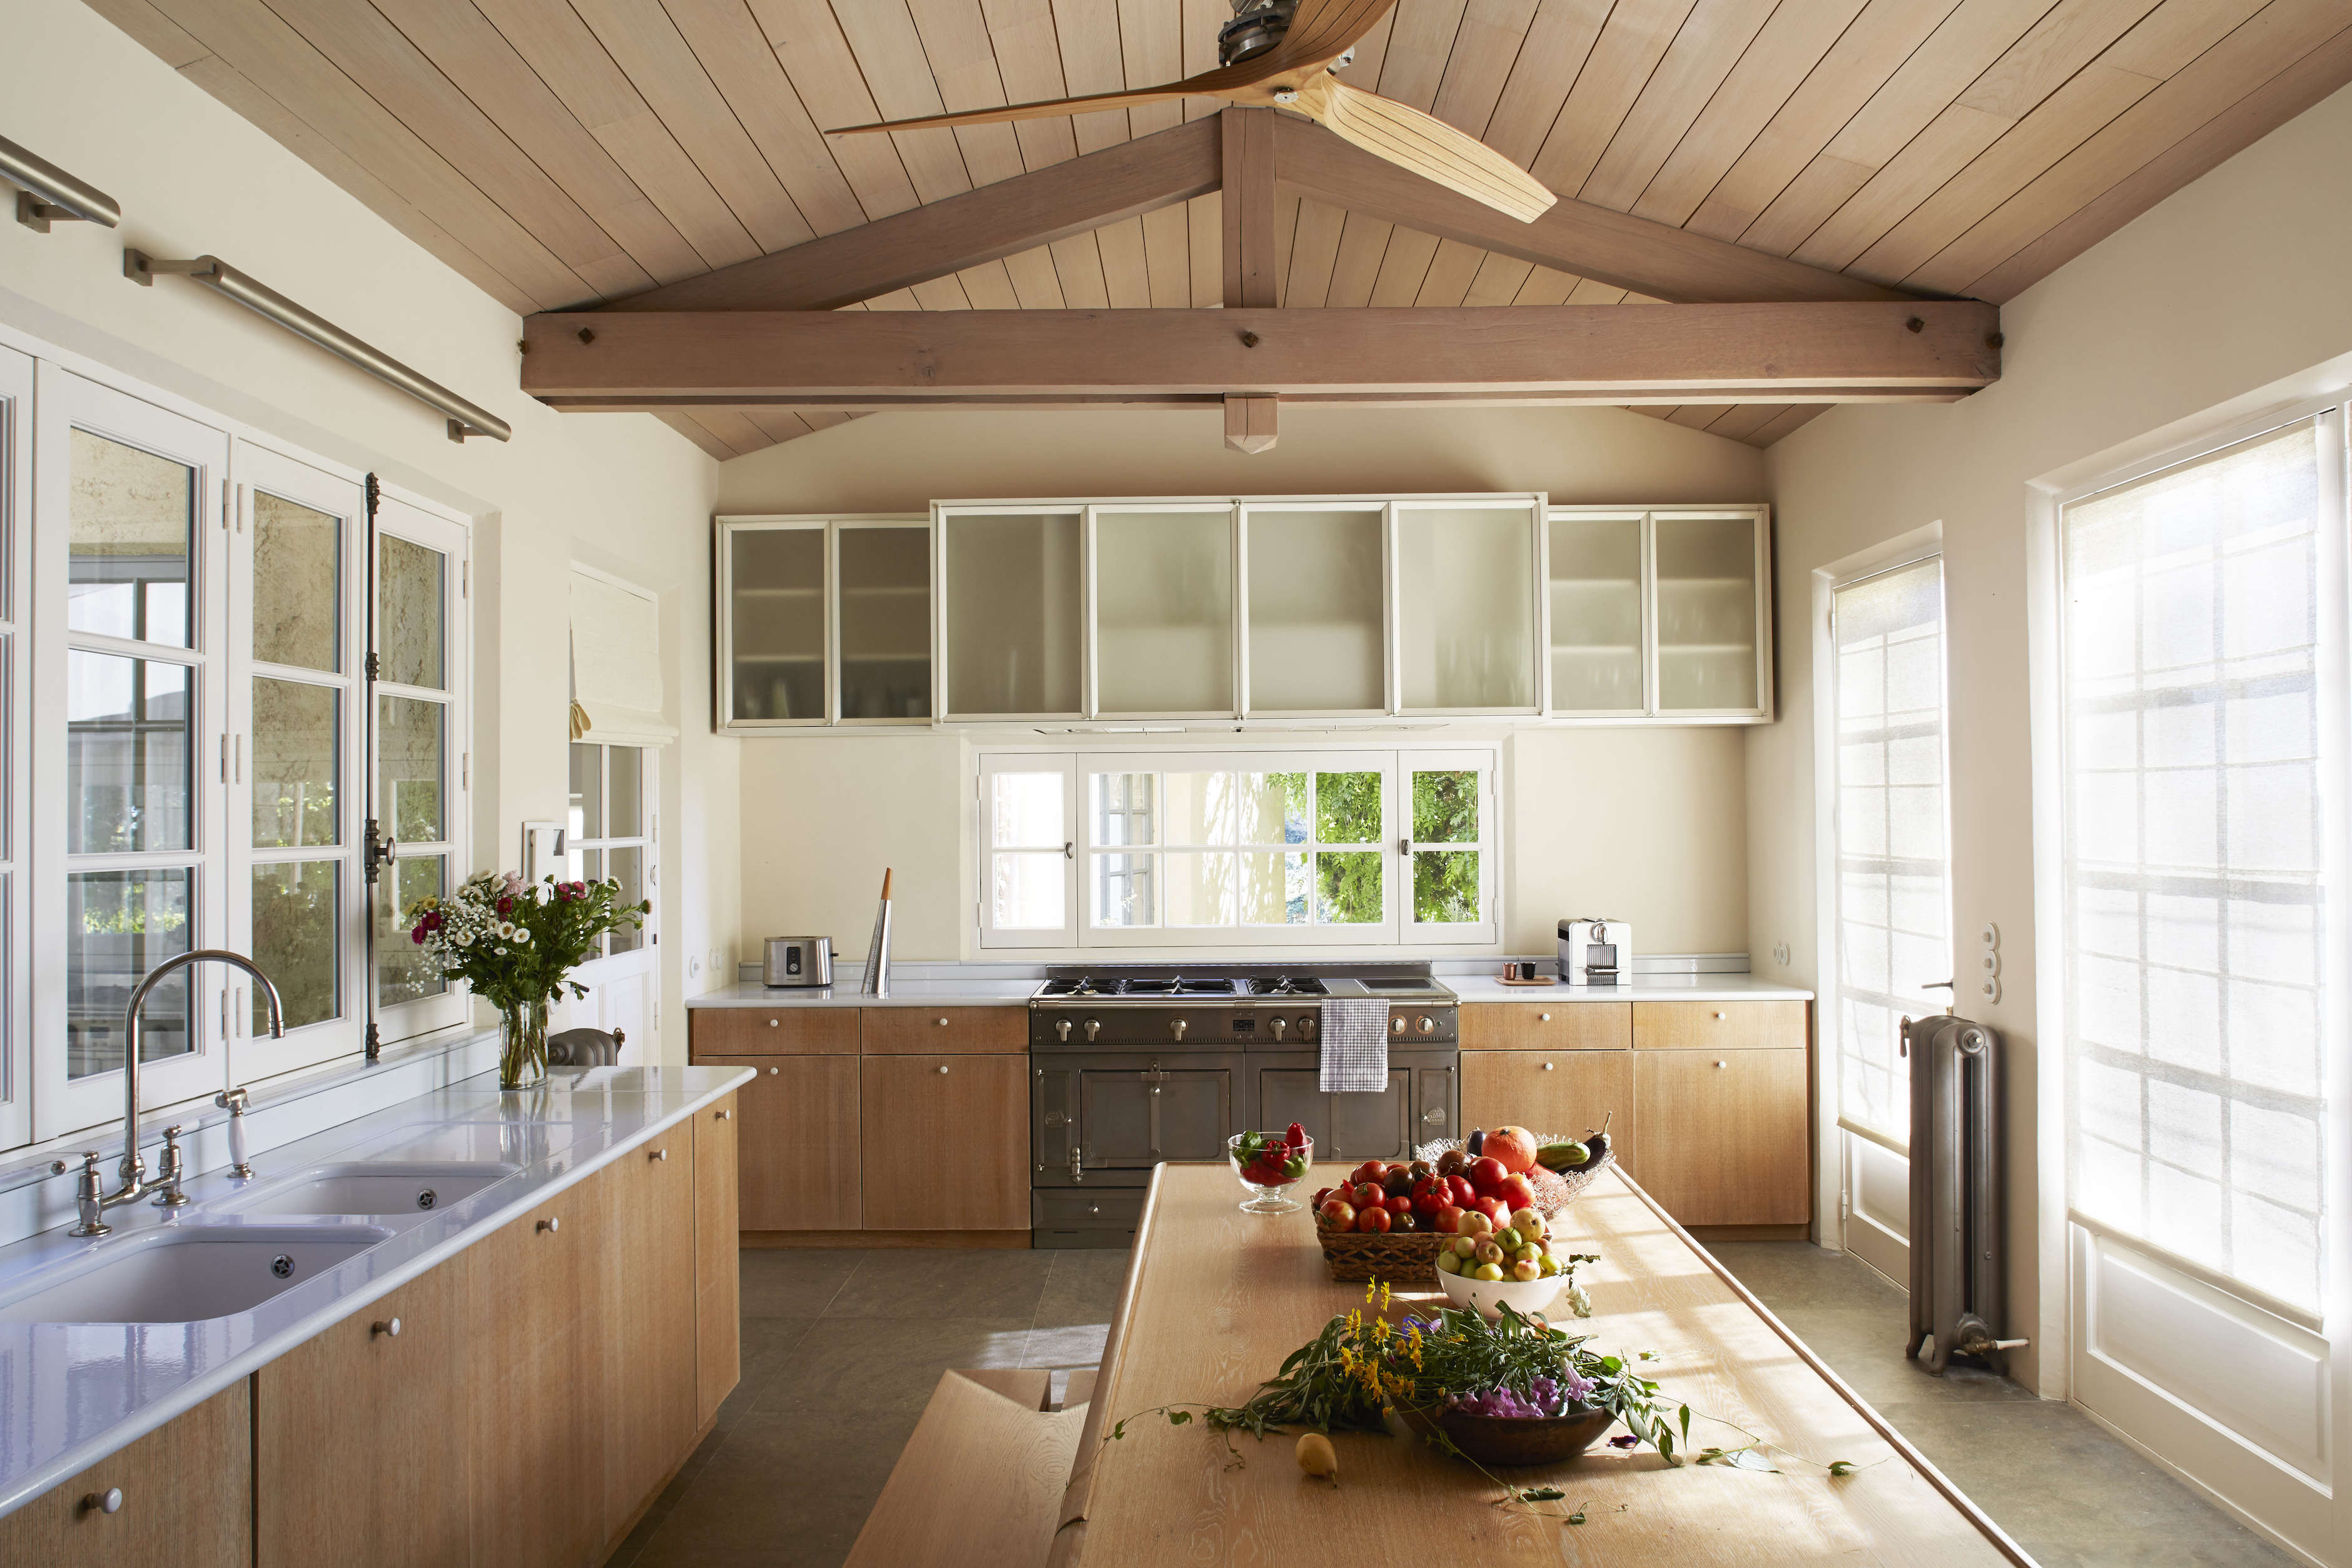 Envisioning the vacationing owners and their friends gathering in the kitchen, Barnes created a refined-rustic look by inserting solid oakbeams and a paneled oak ceiling.